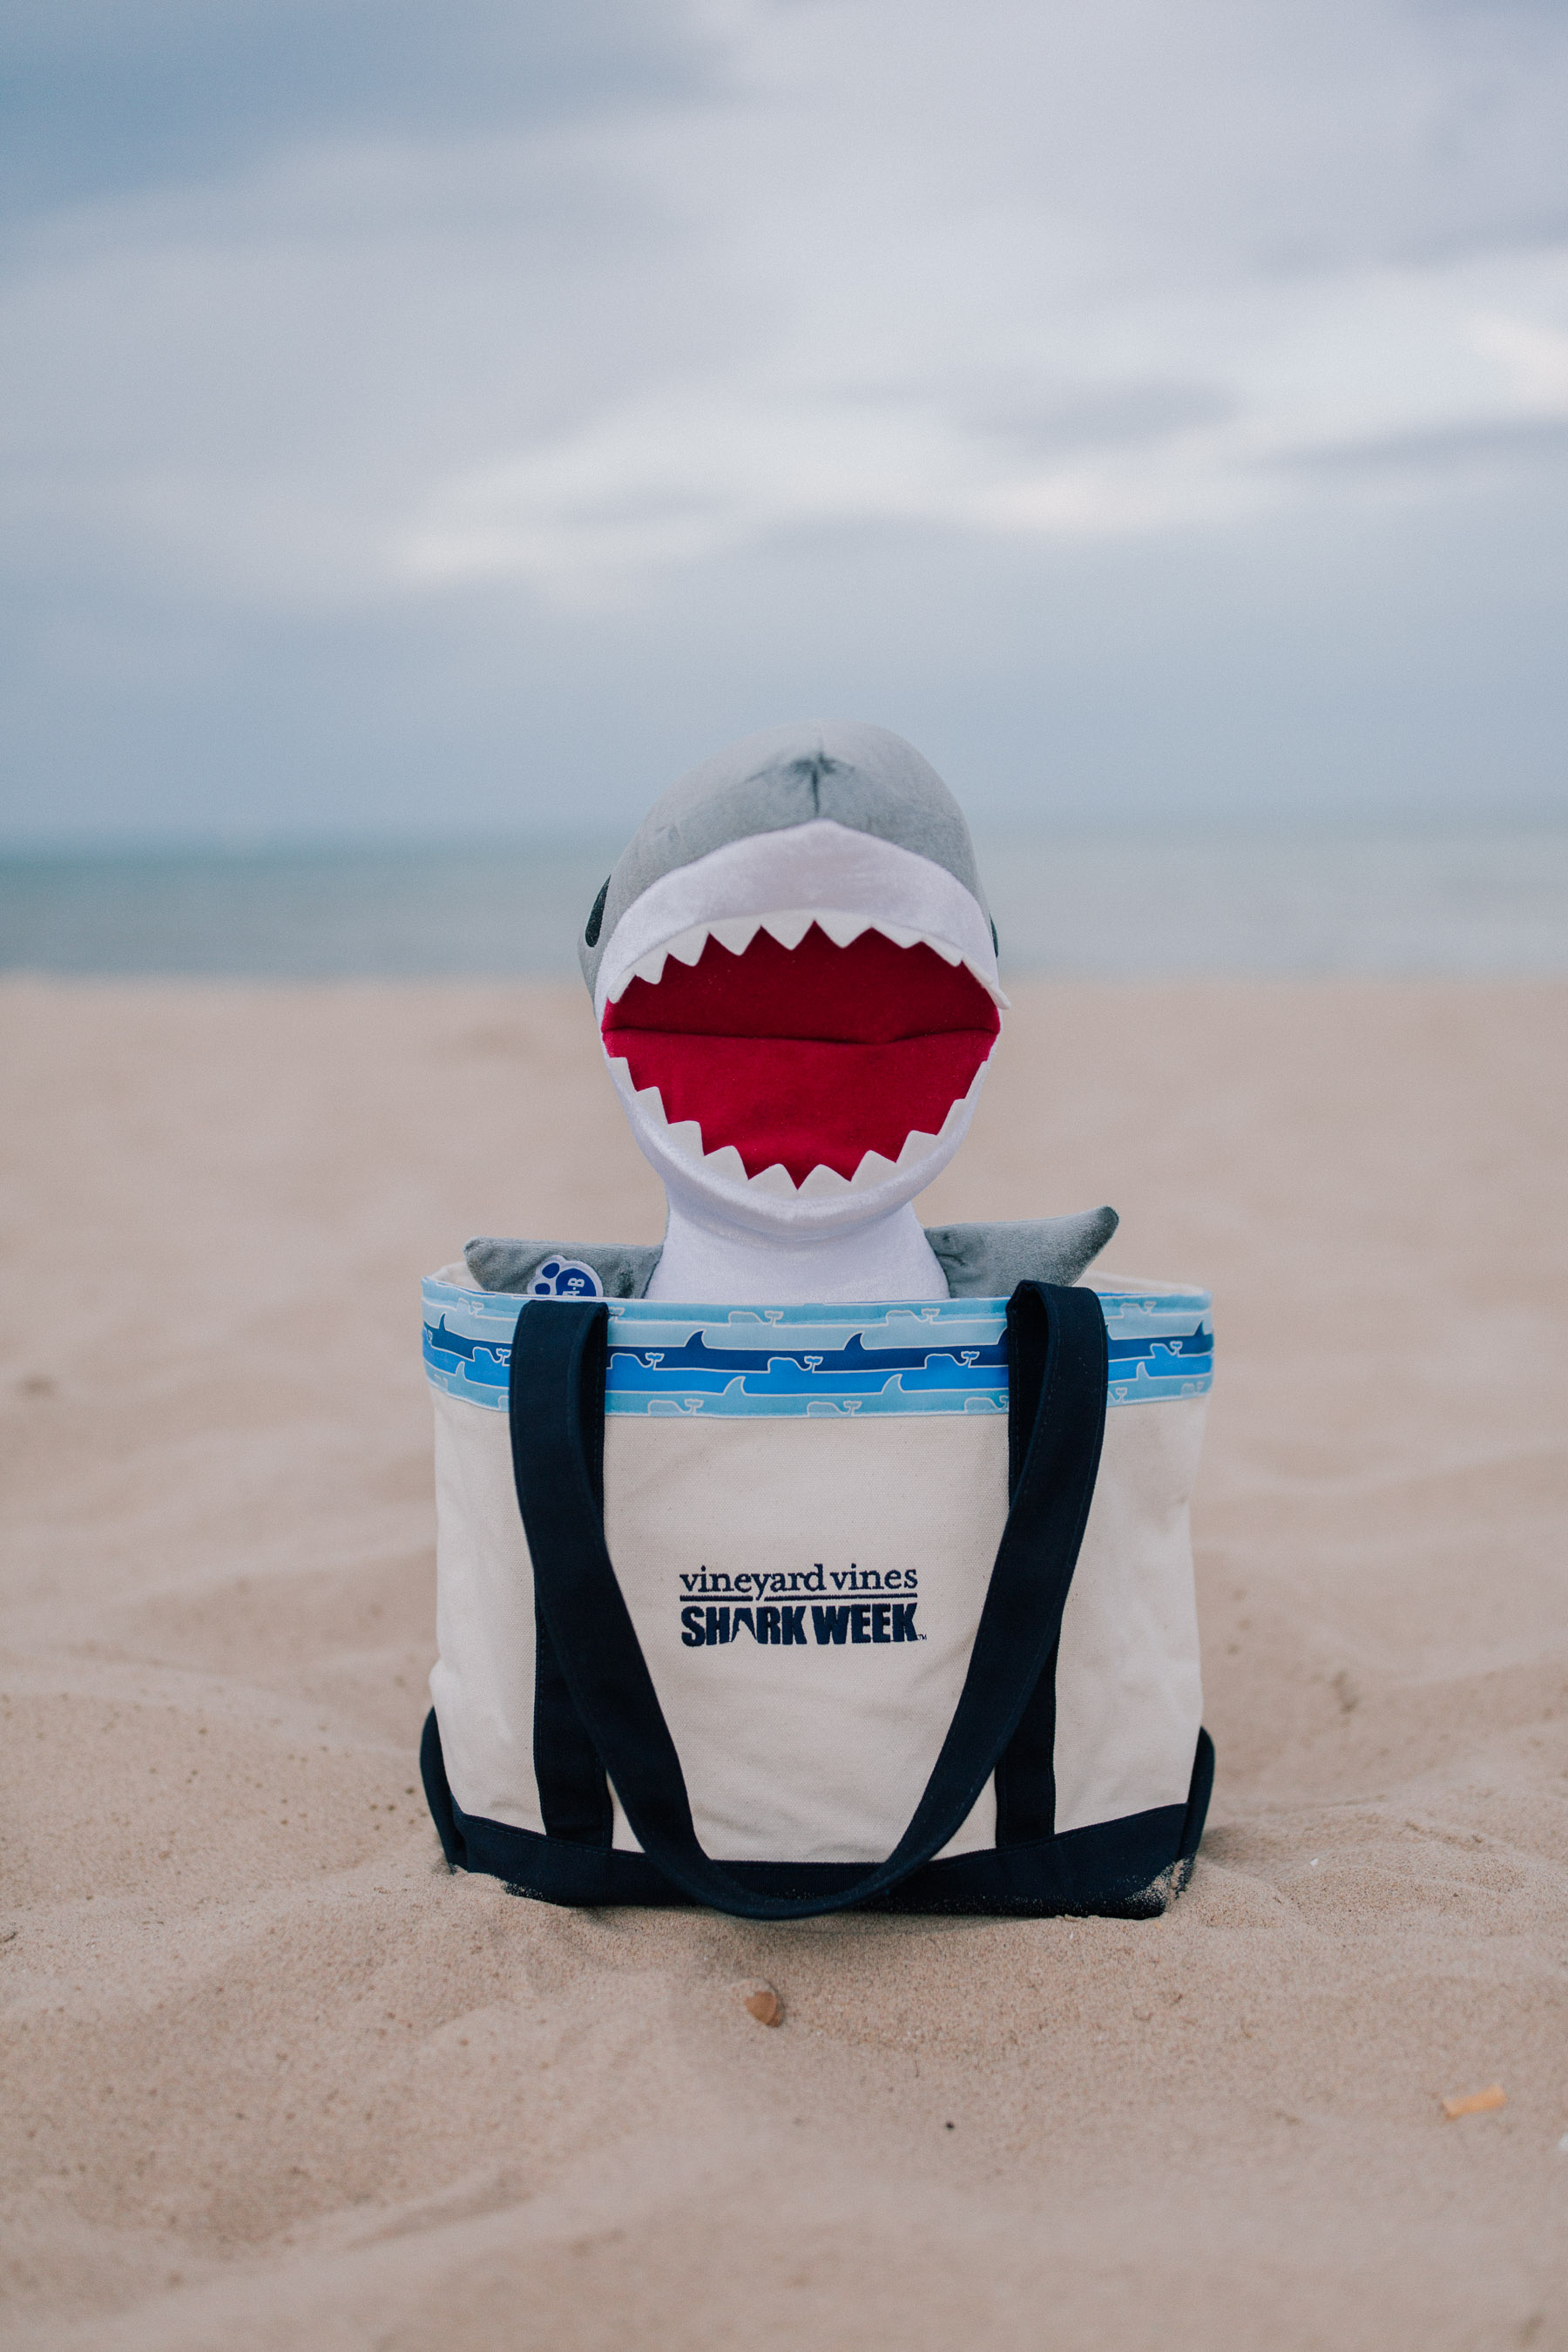 Vineyard Vines - Shark Week bag